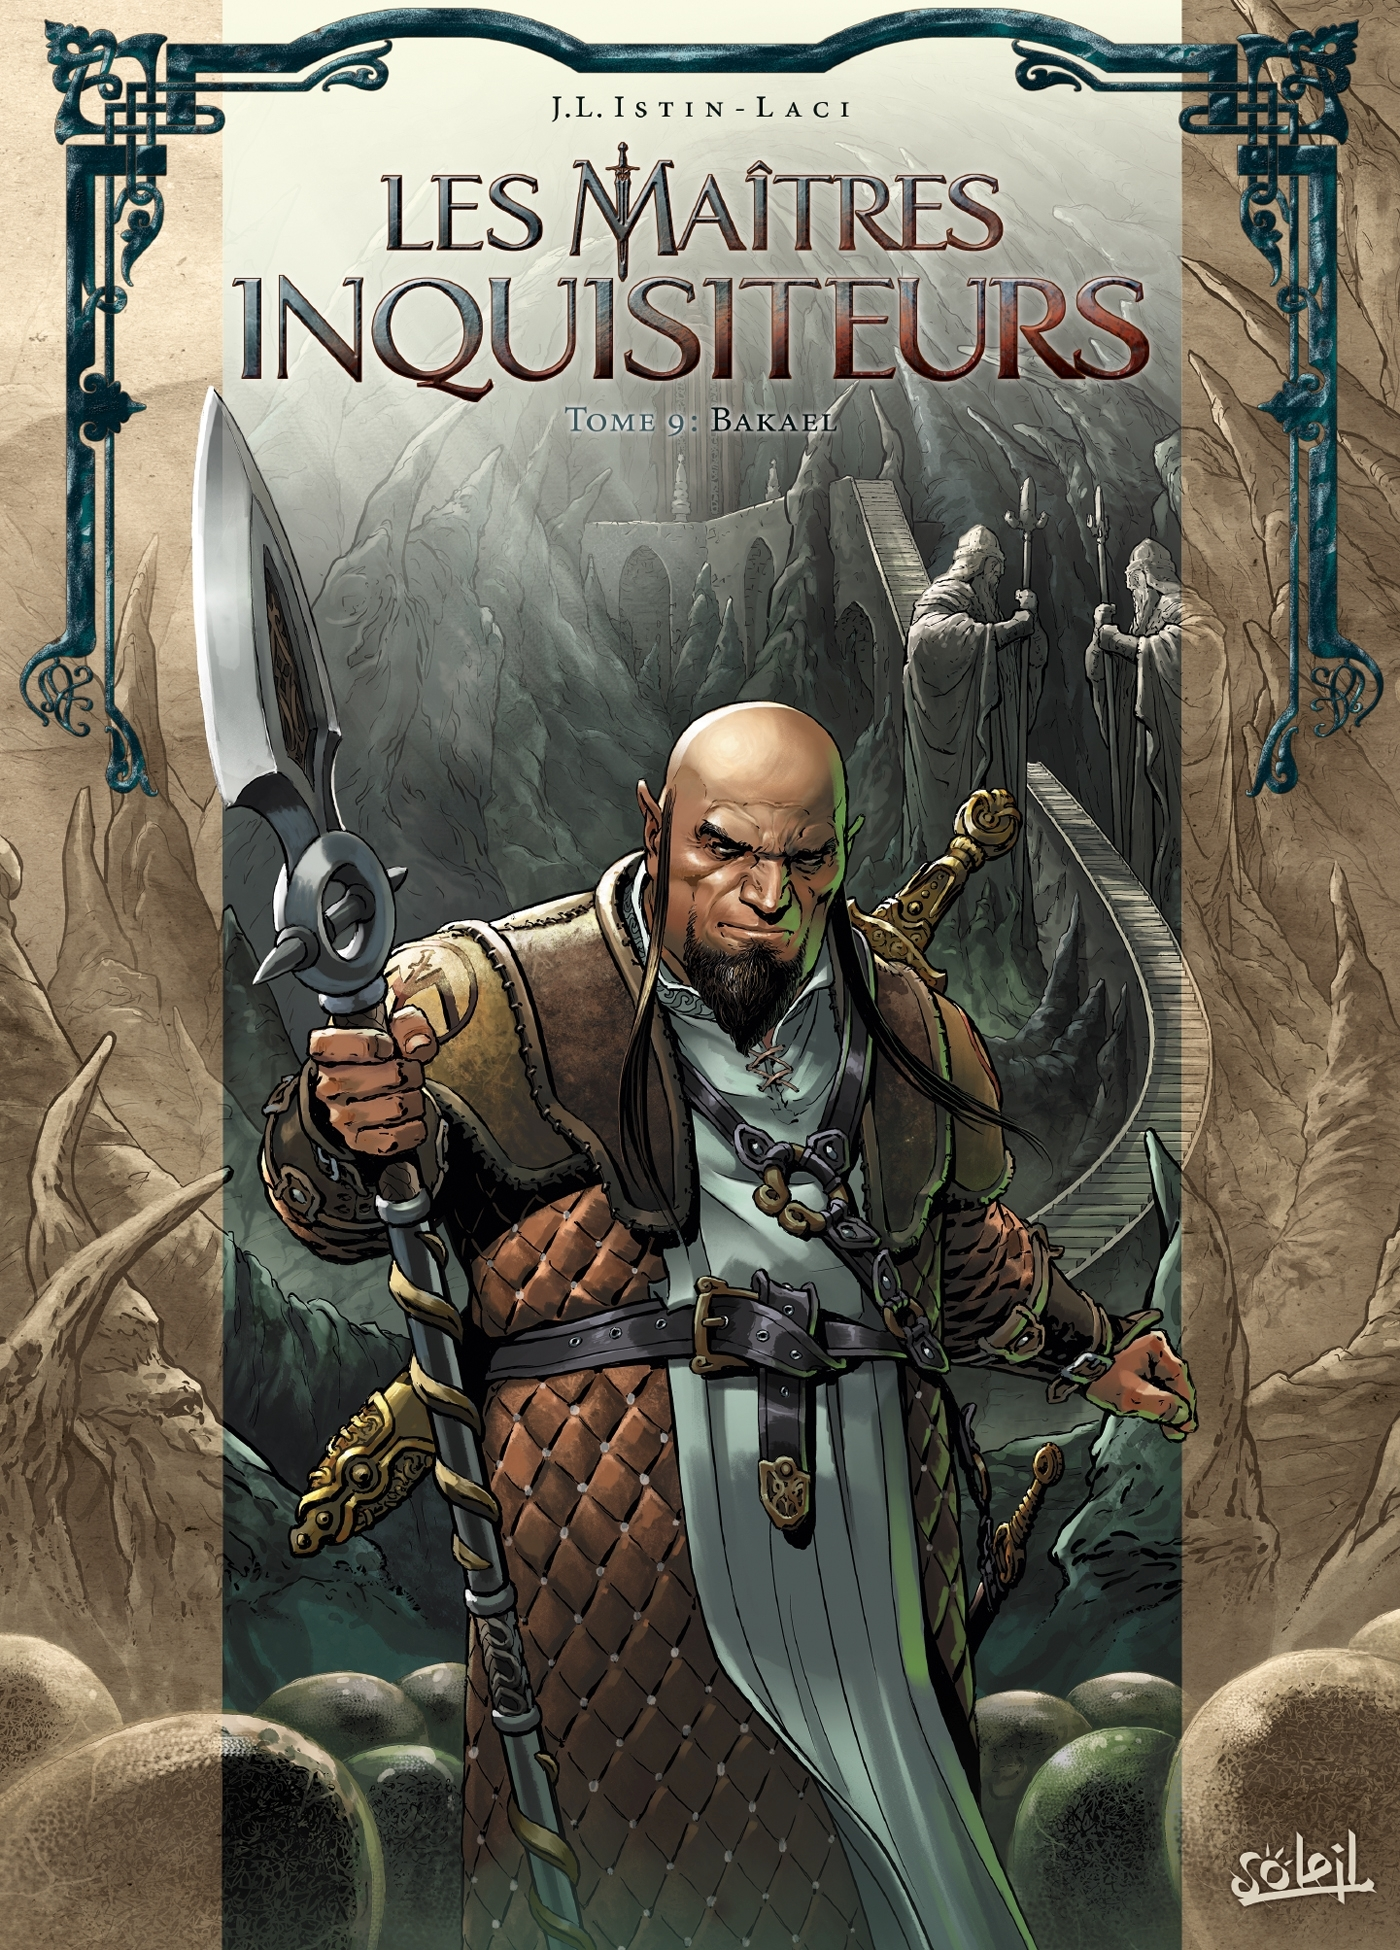 LES MAITRES INQUISITEURS T09 - BAKAEL